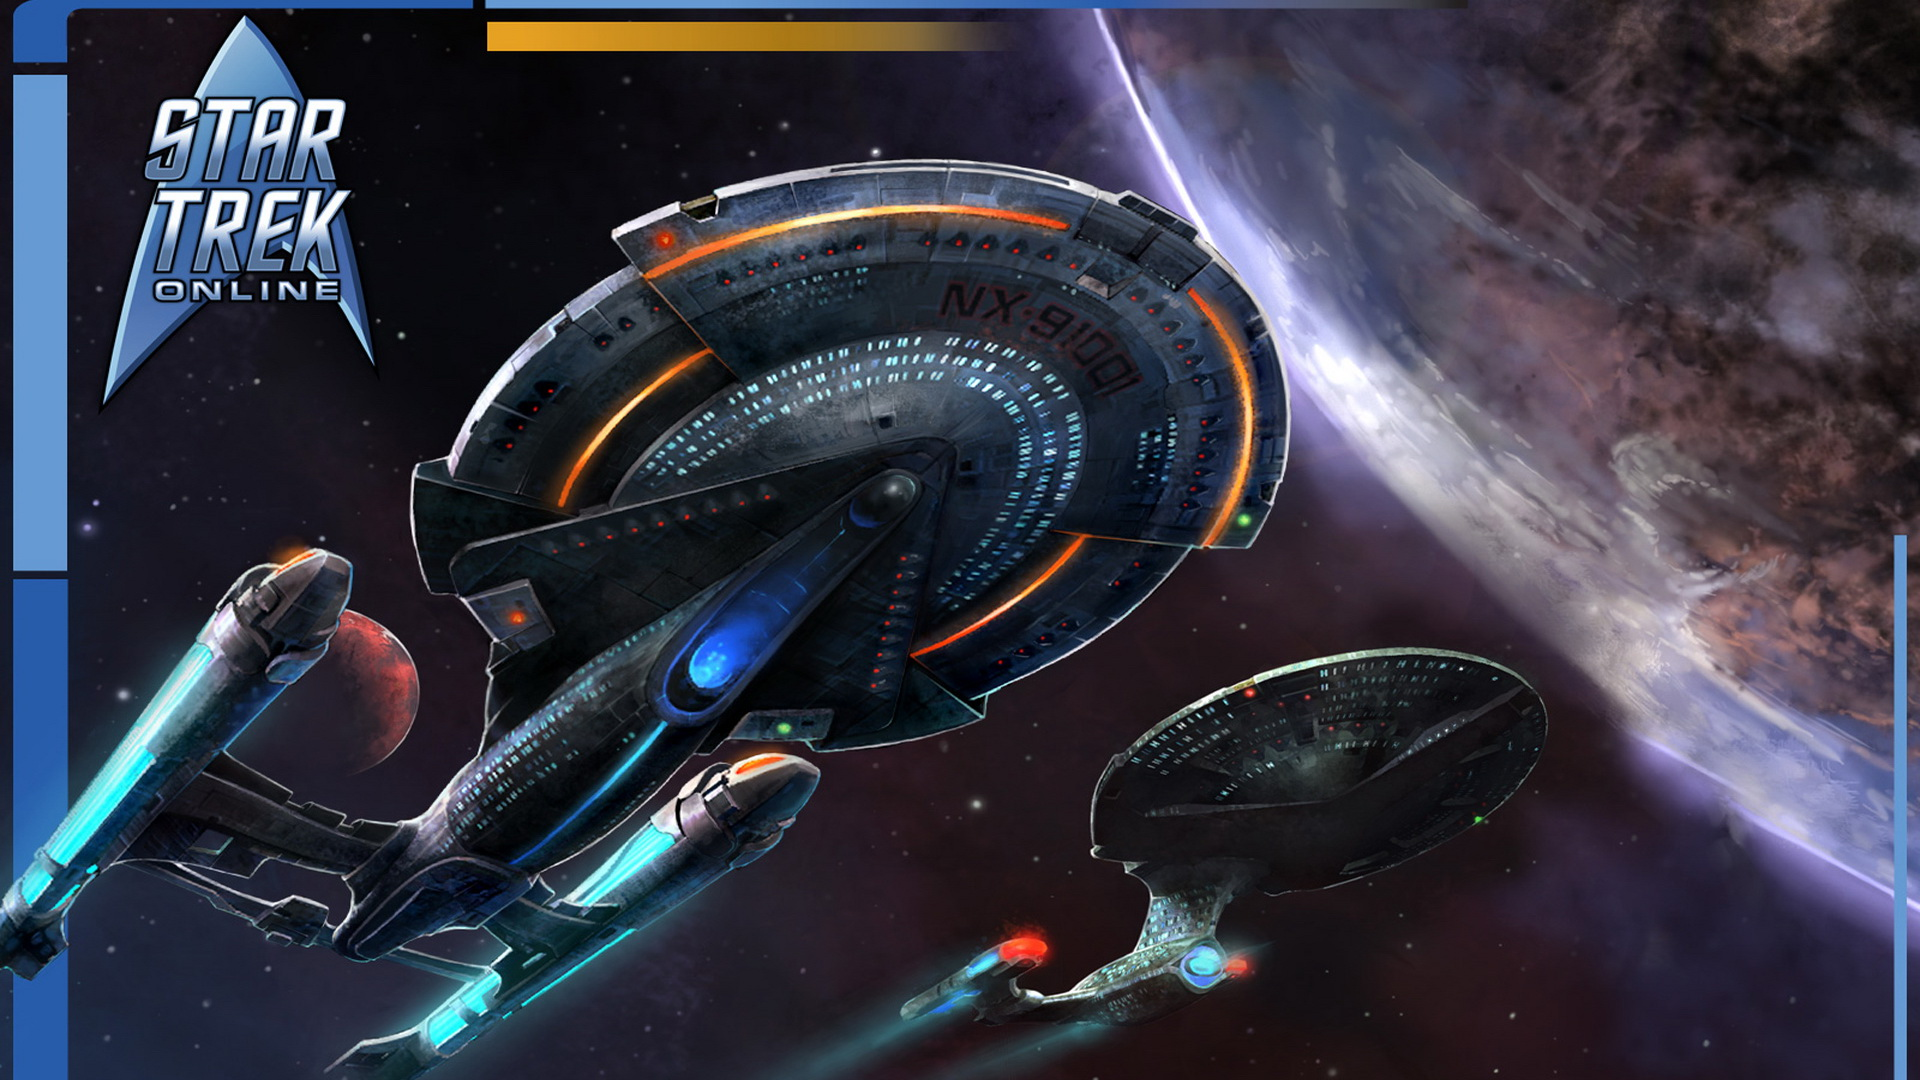 star trek online Wallpaper Game HD Wallpapers Video Games HD 1080p 1920x1080